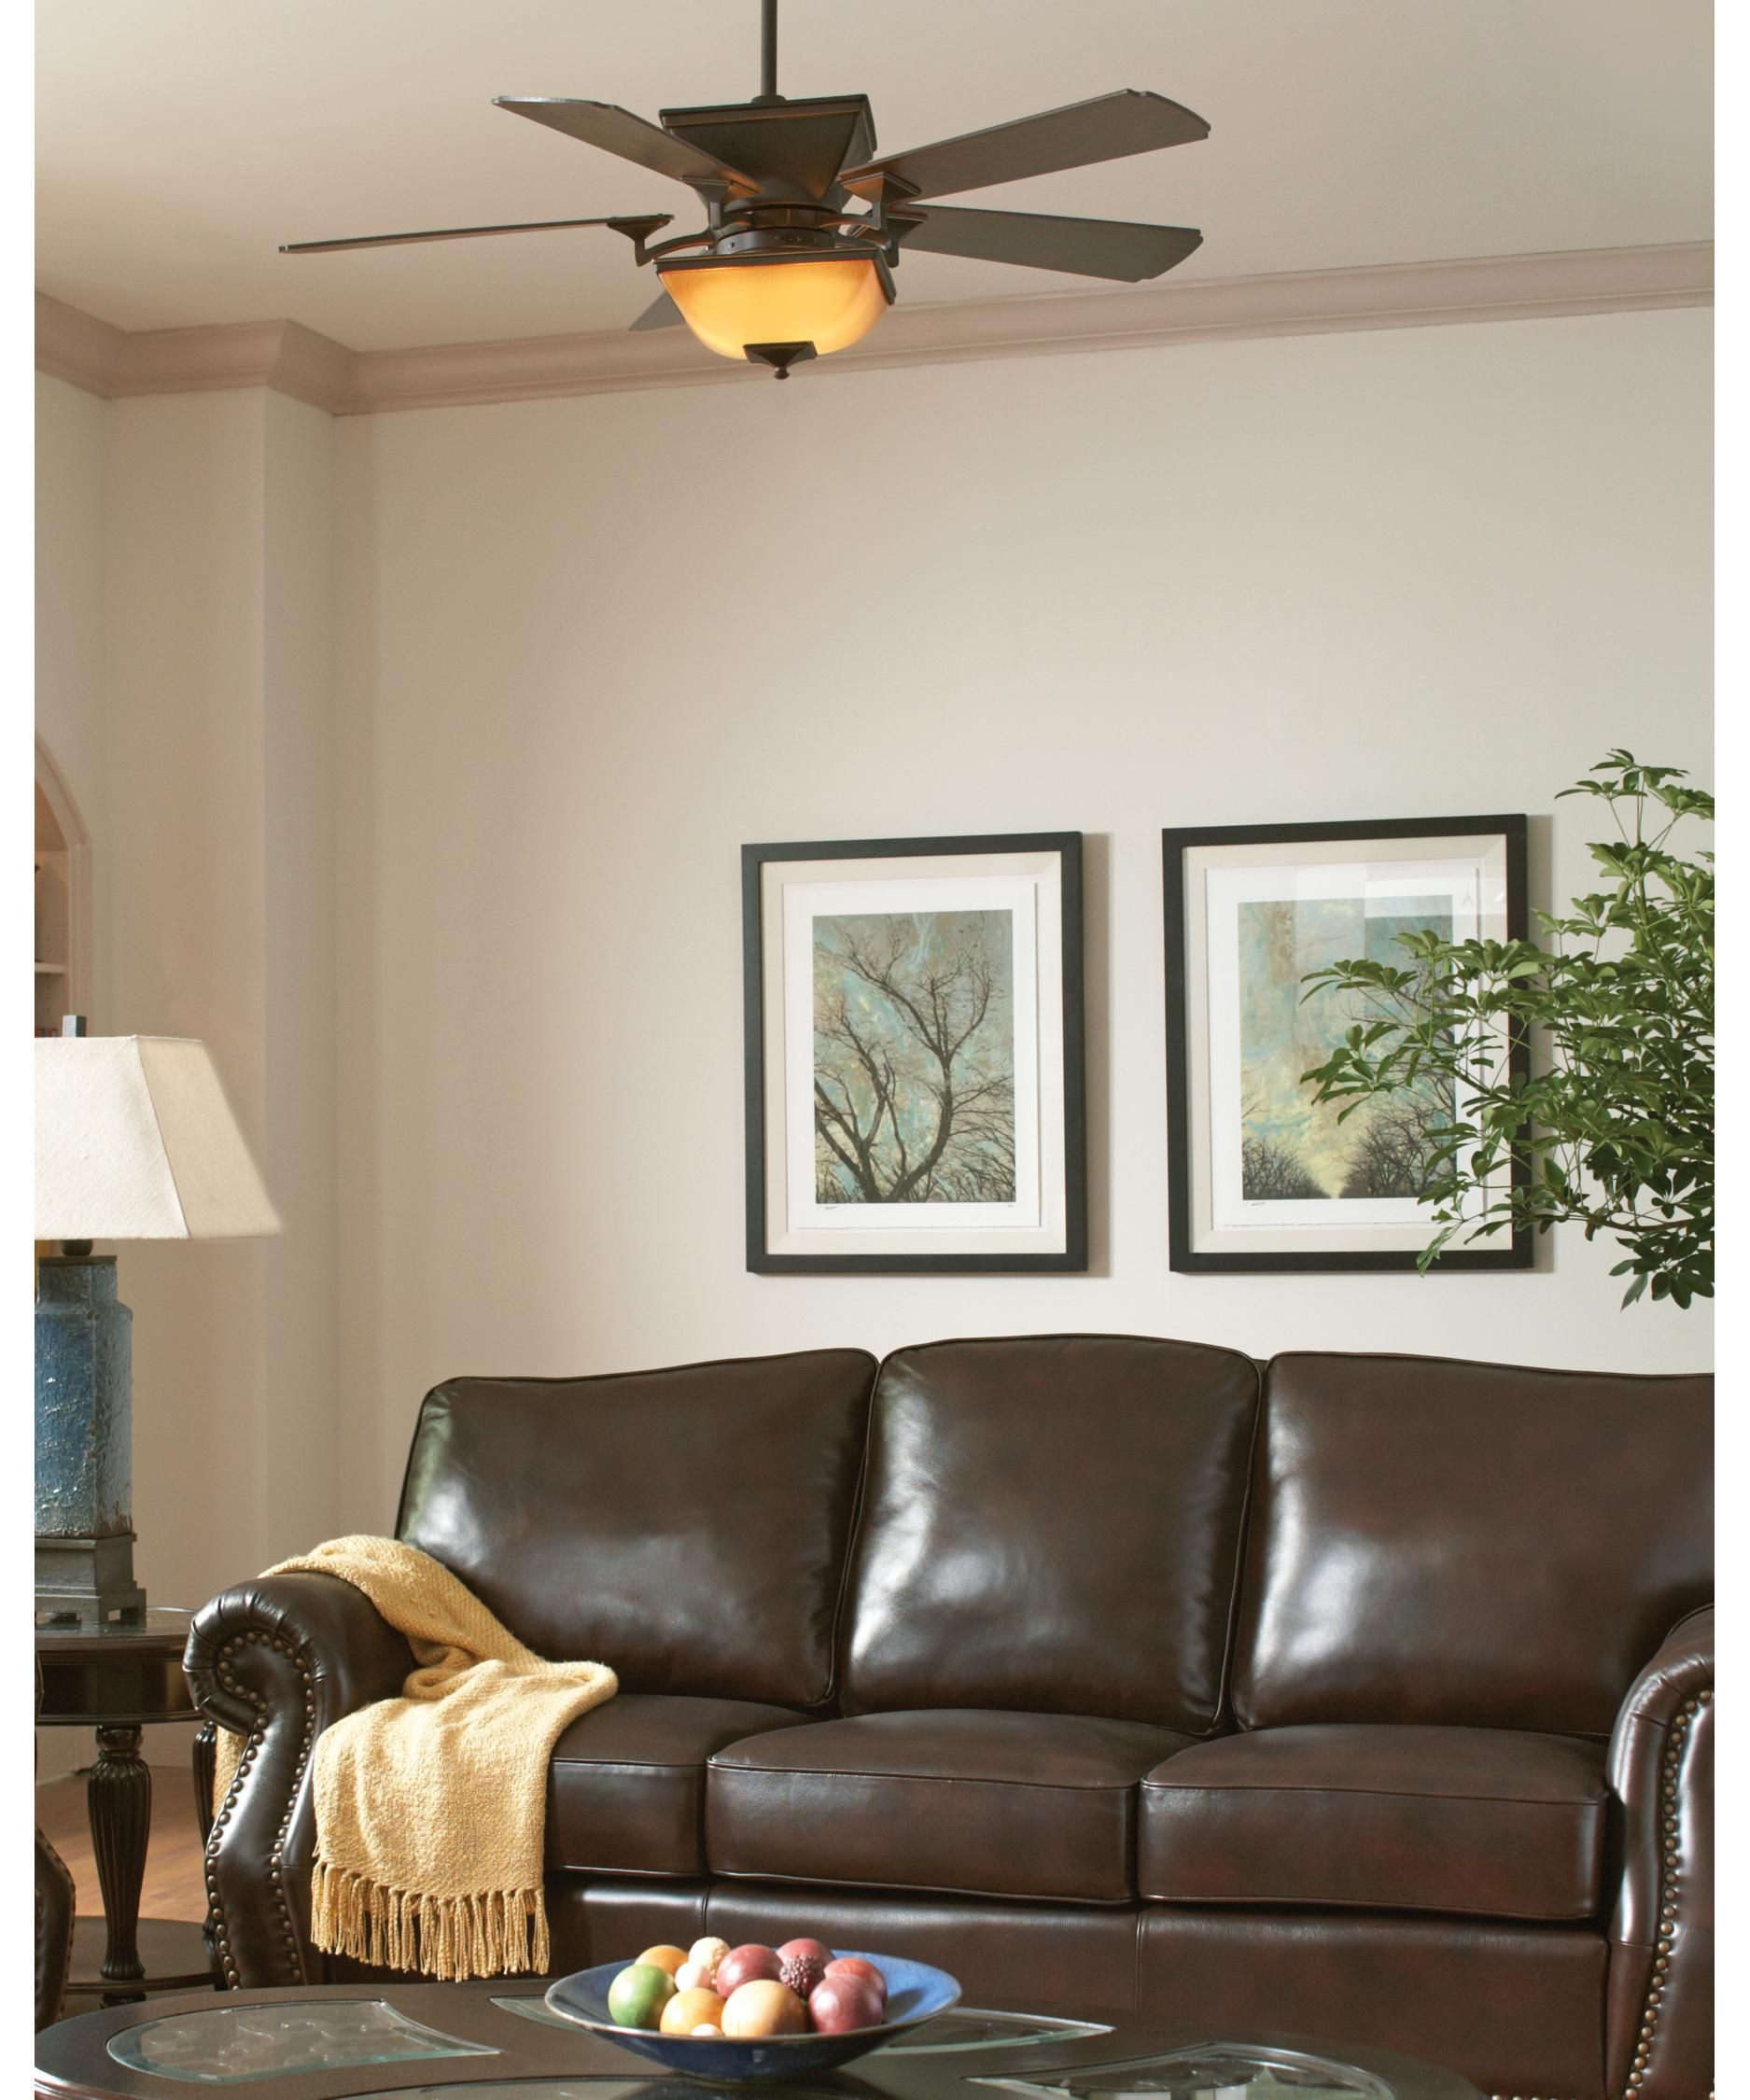 Monte carlo town square 52 inch 5 blade ceiling fan capitol monte carlo town square 52 inch 5 blade ceiling fan capitol lighting 1 800lighting mozeypictures Gallery